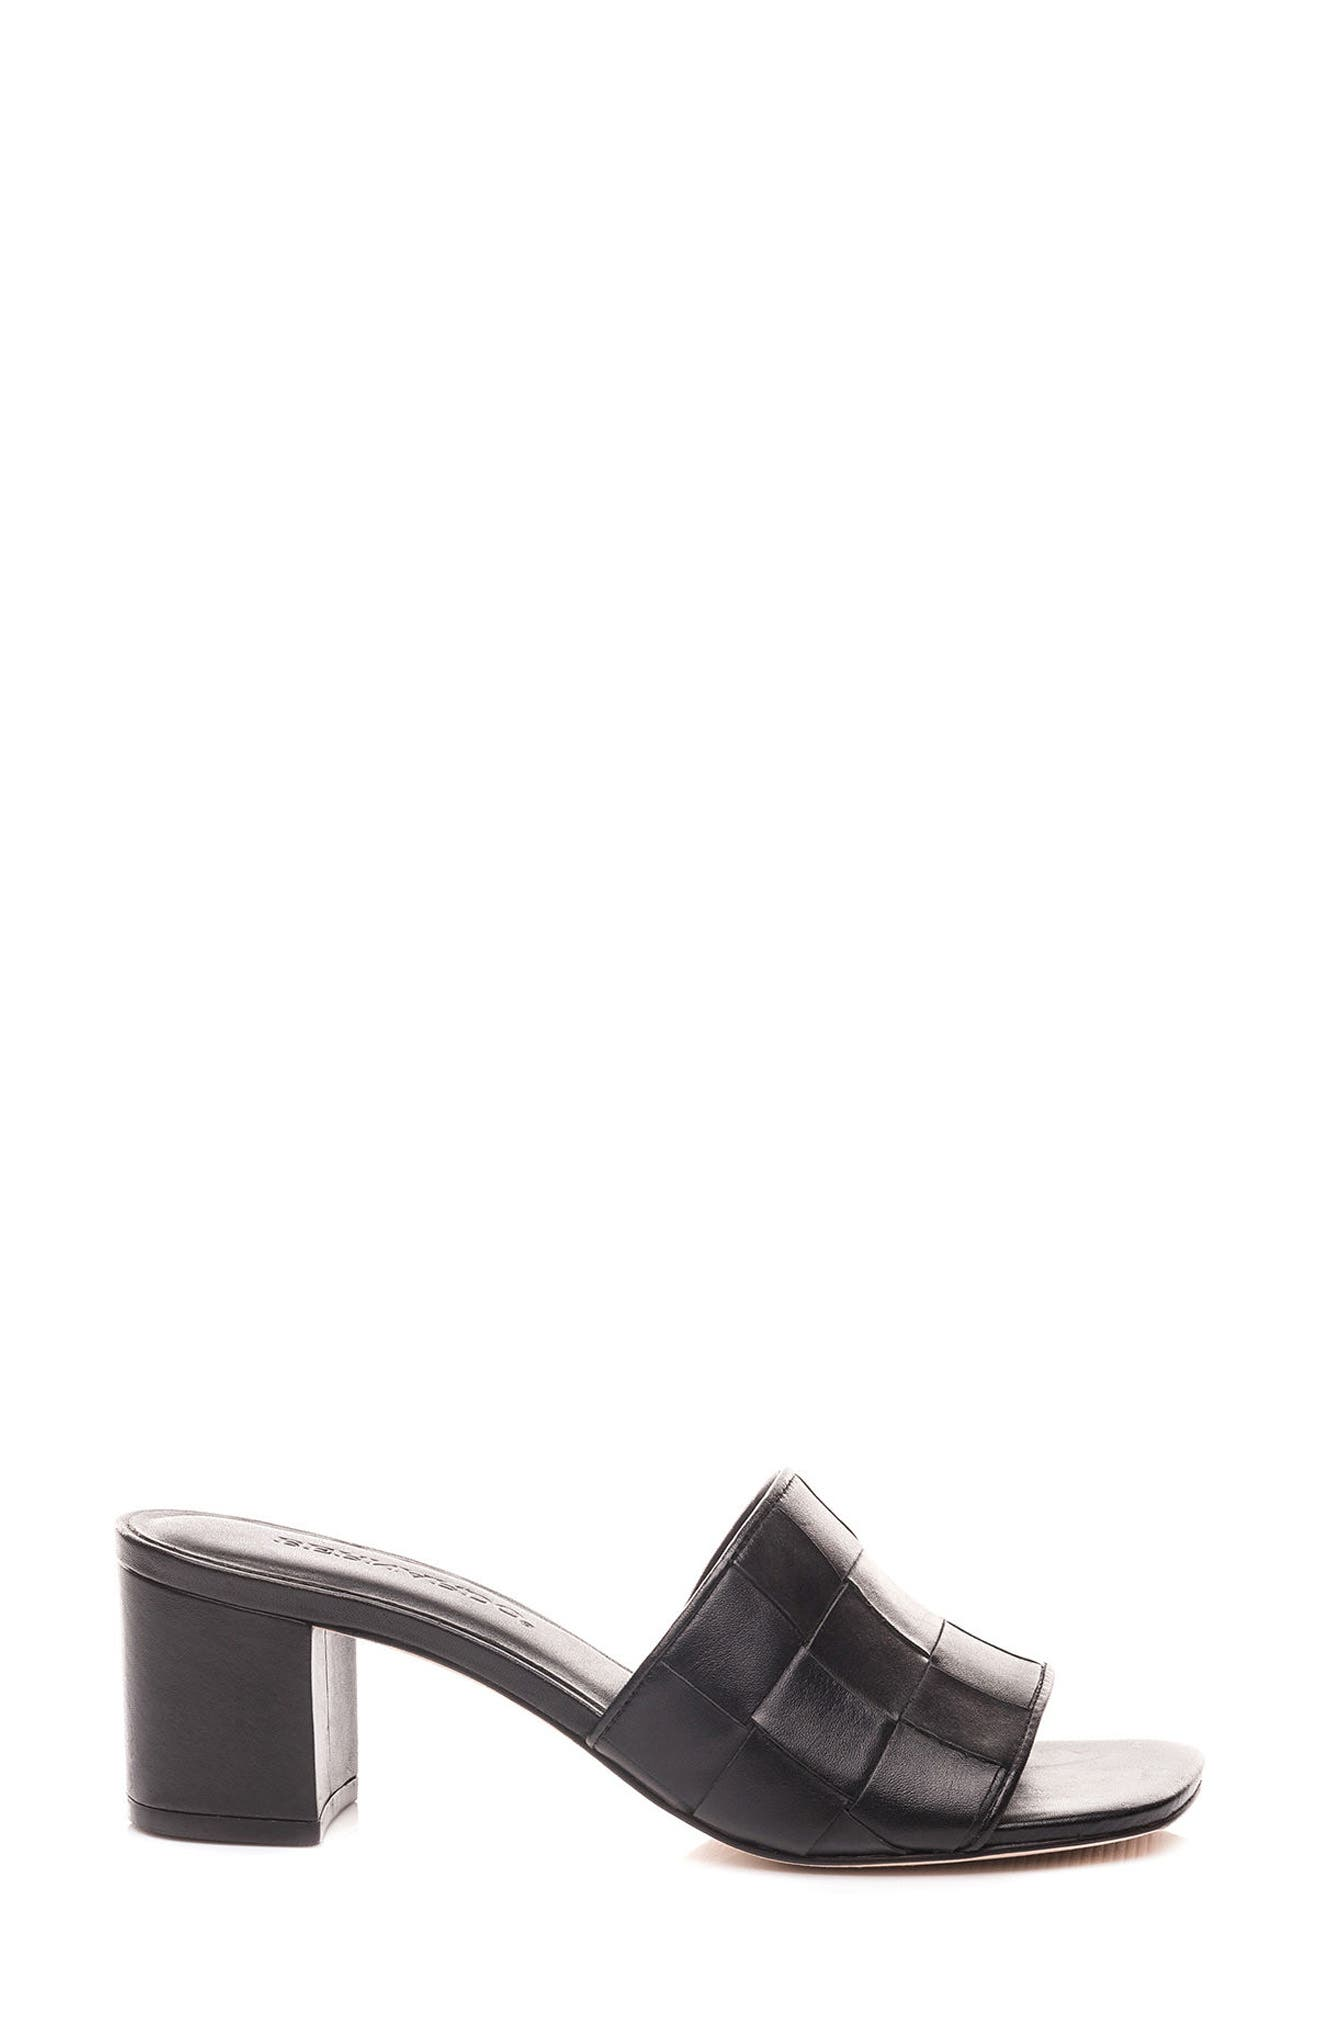 Bernardo Bridget Block Heel Sandal,                             Alternate thumbnail 3, color,                             001